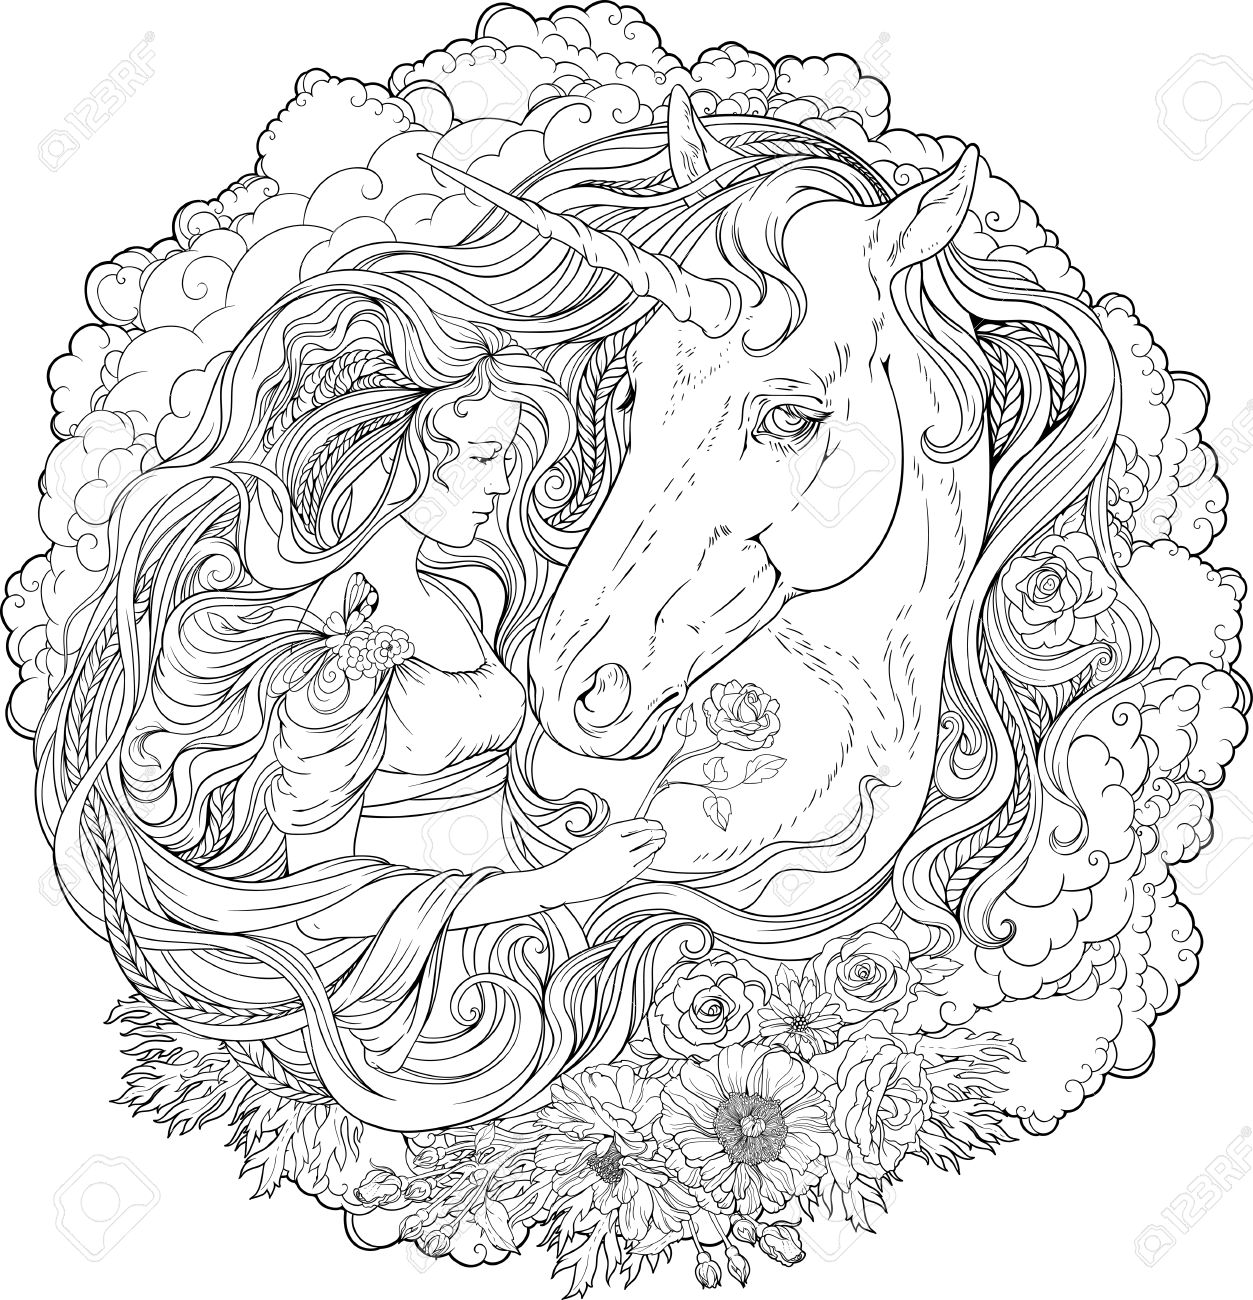 Image Of A Unicorn And A Girl In Clouds. Coloring Page. Royalty Free ...